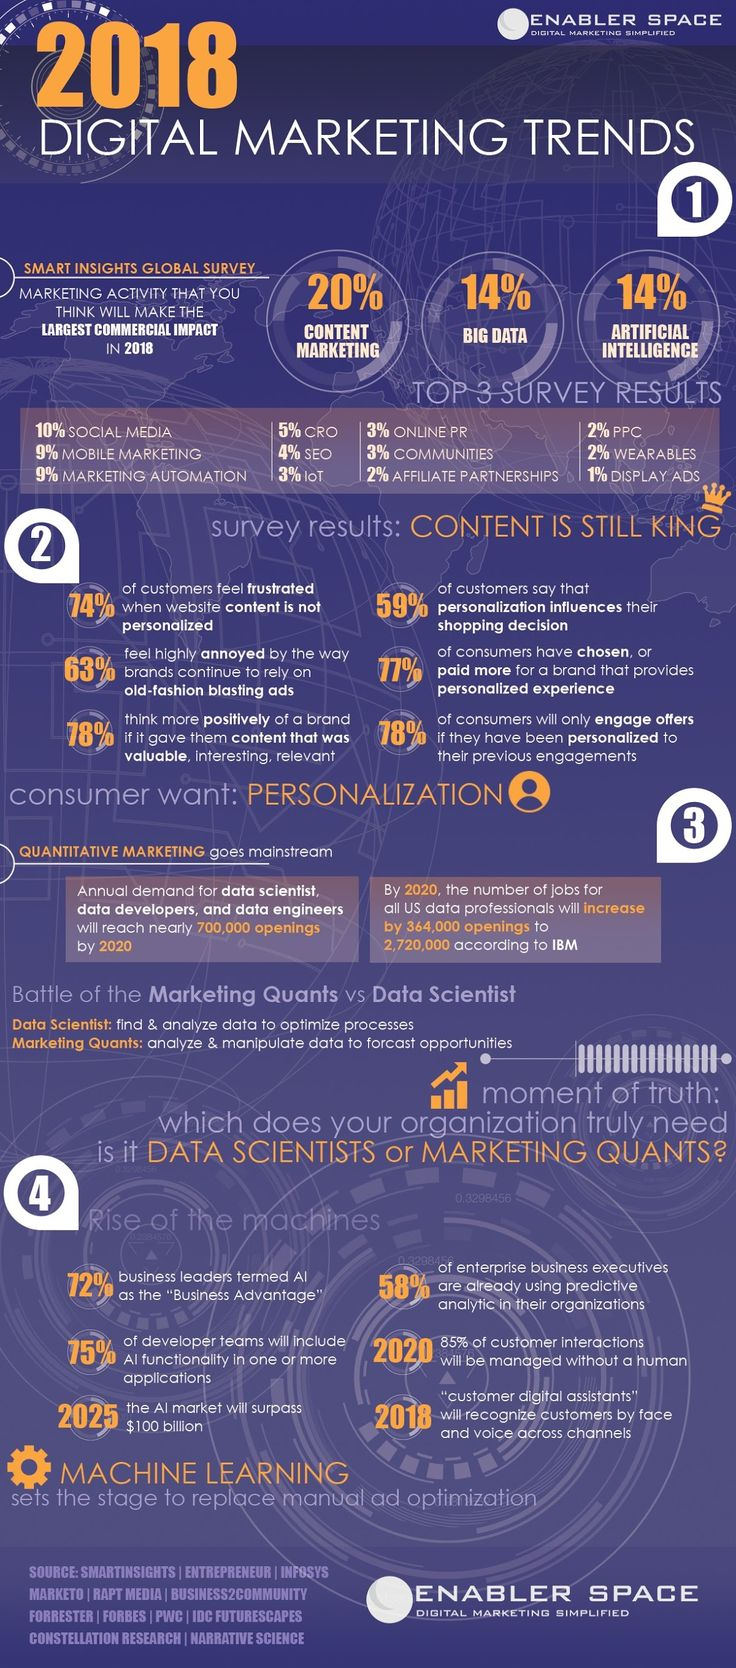 [Infographic] 2018 Digital Marketing Trends and Statistics